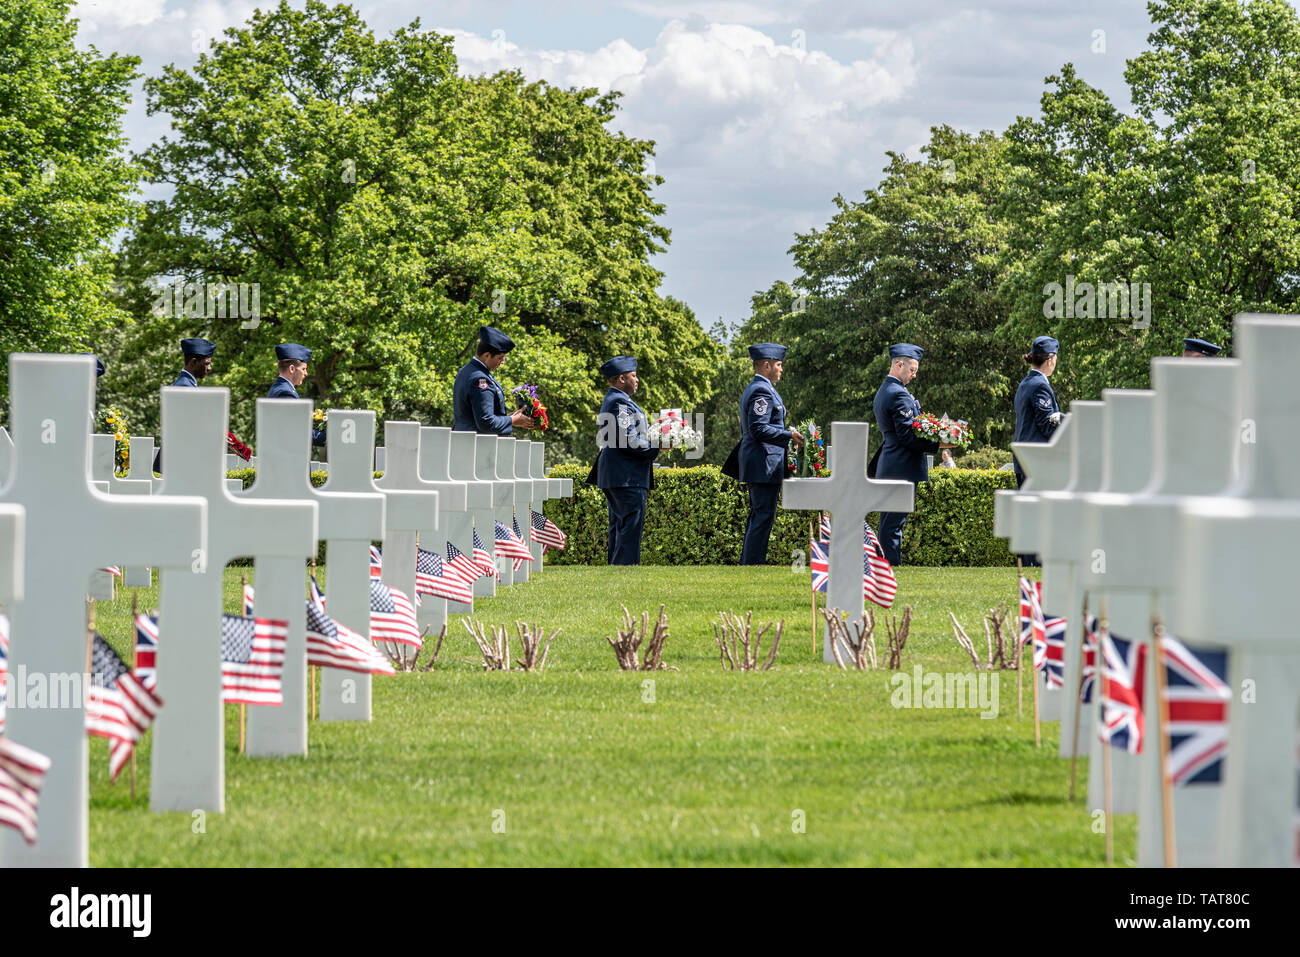 US service personnel with wreaths and crosses on US Memorial Day remembrance event at Cambridge American Cemetery and Memorial, Cambridgeshire, UK. Stock Photo